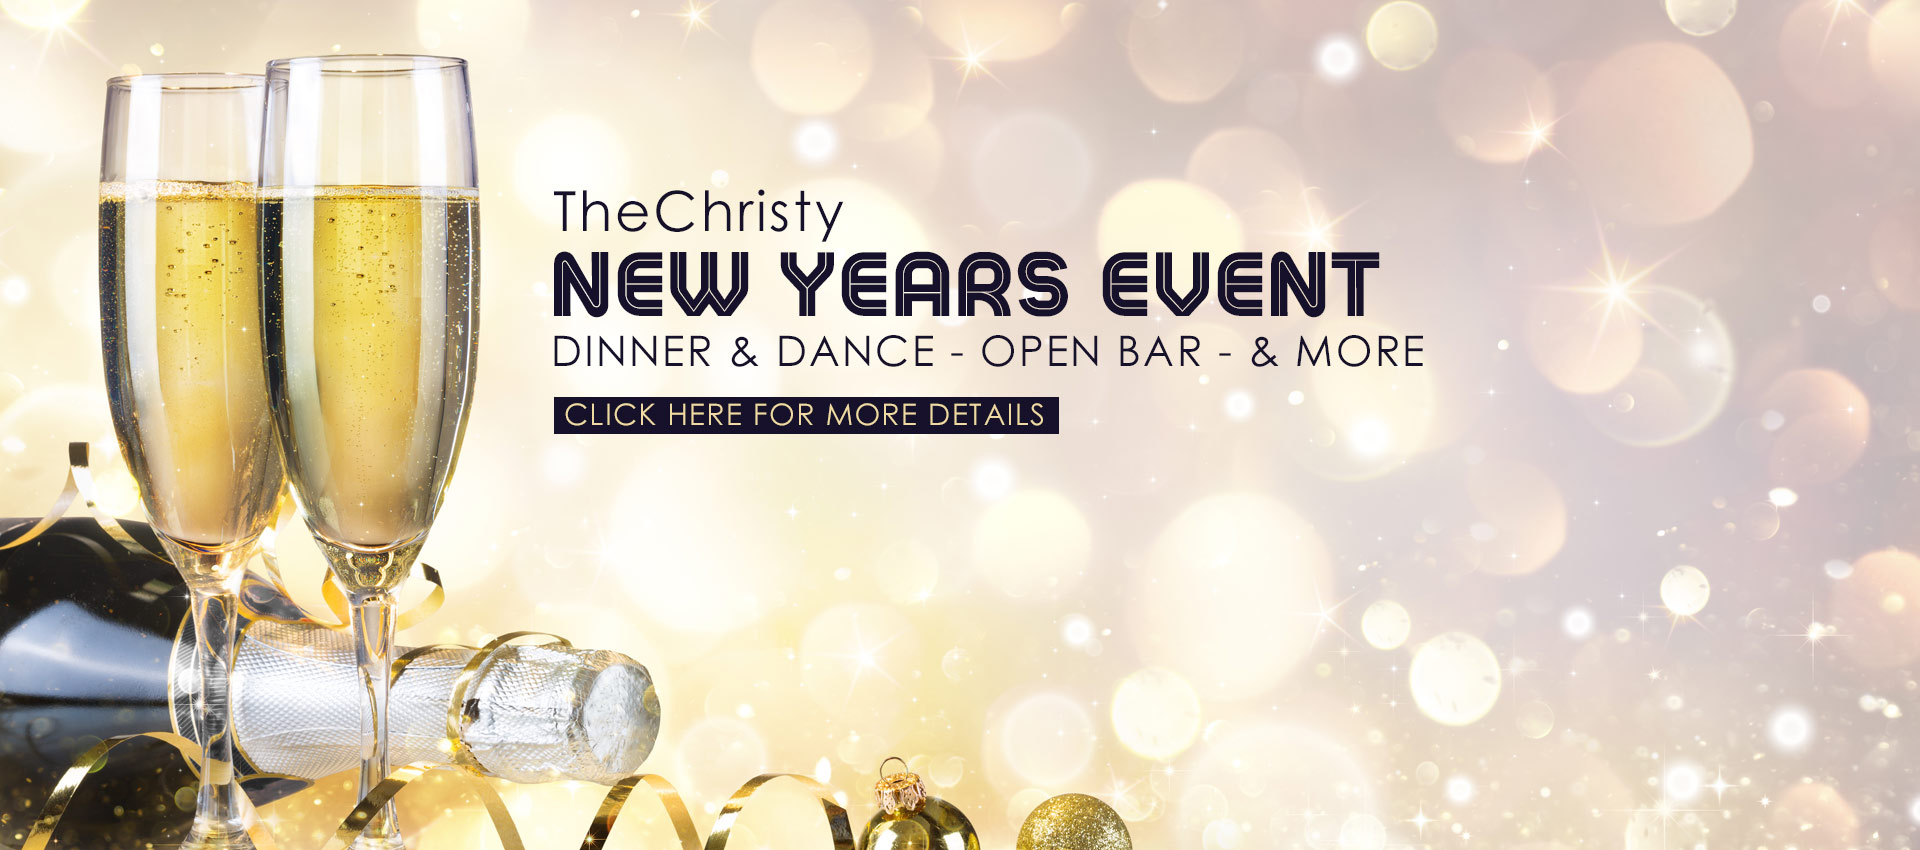 The Christy - New Years Eve Event